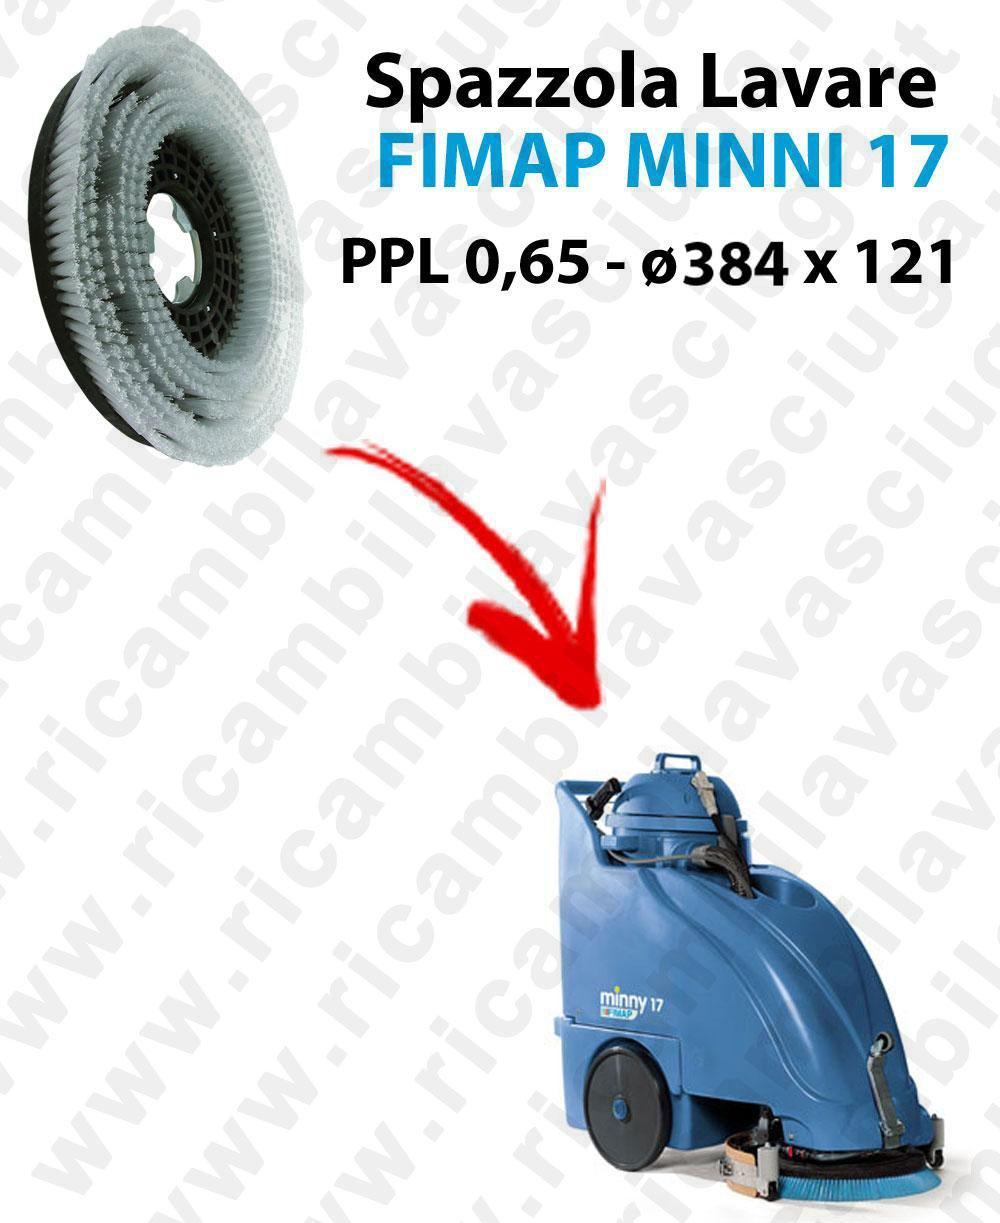 Cleaning Brush for scrubber dryer FIMAP MINNY 17. Model: PPL 0,65  ⌀384 X 121